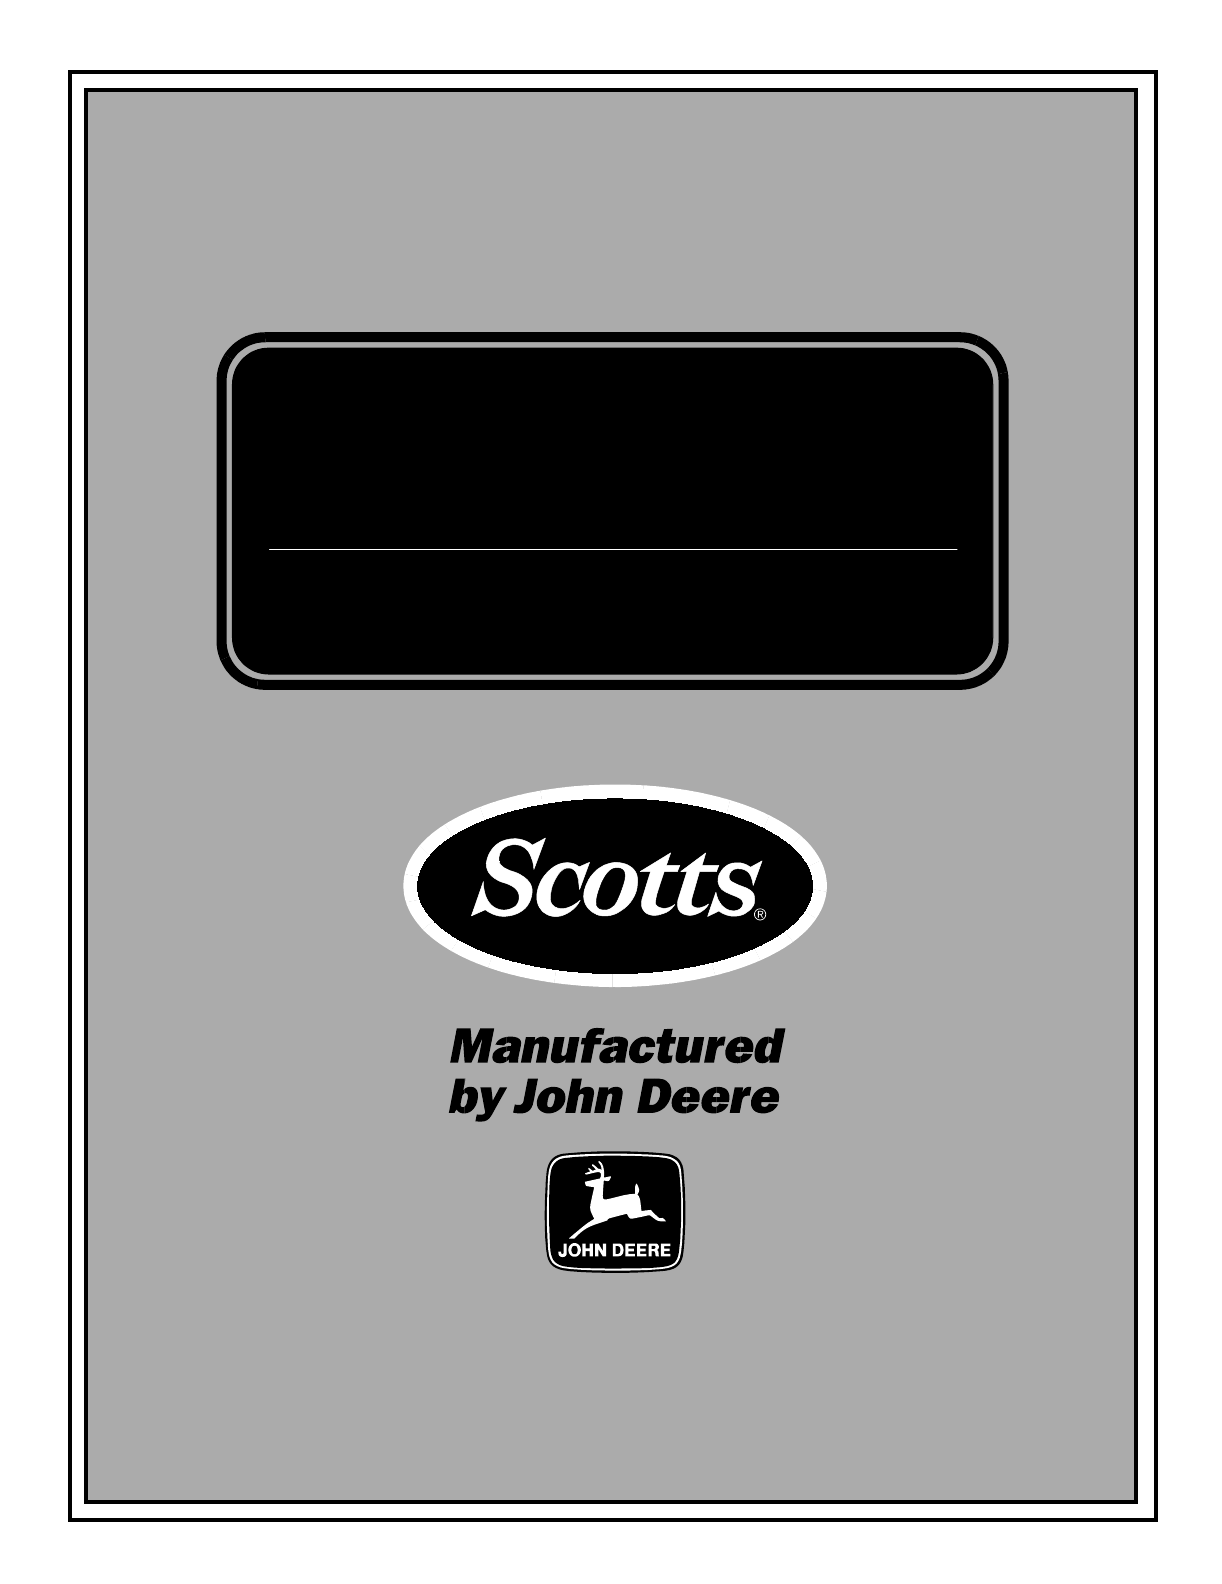 2141e15a 36a6 9594 0166 6f10fba50f44 bg1 scotts lawn mower s1642, s1742, s2046 user guide manualsonline com scotts s1642 wiring diagram at edmiracle.co